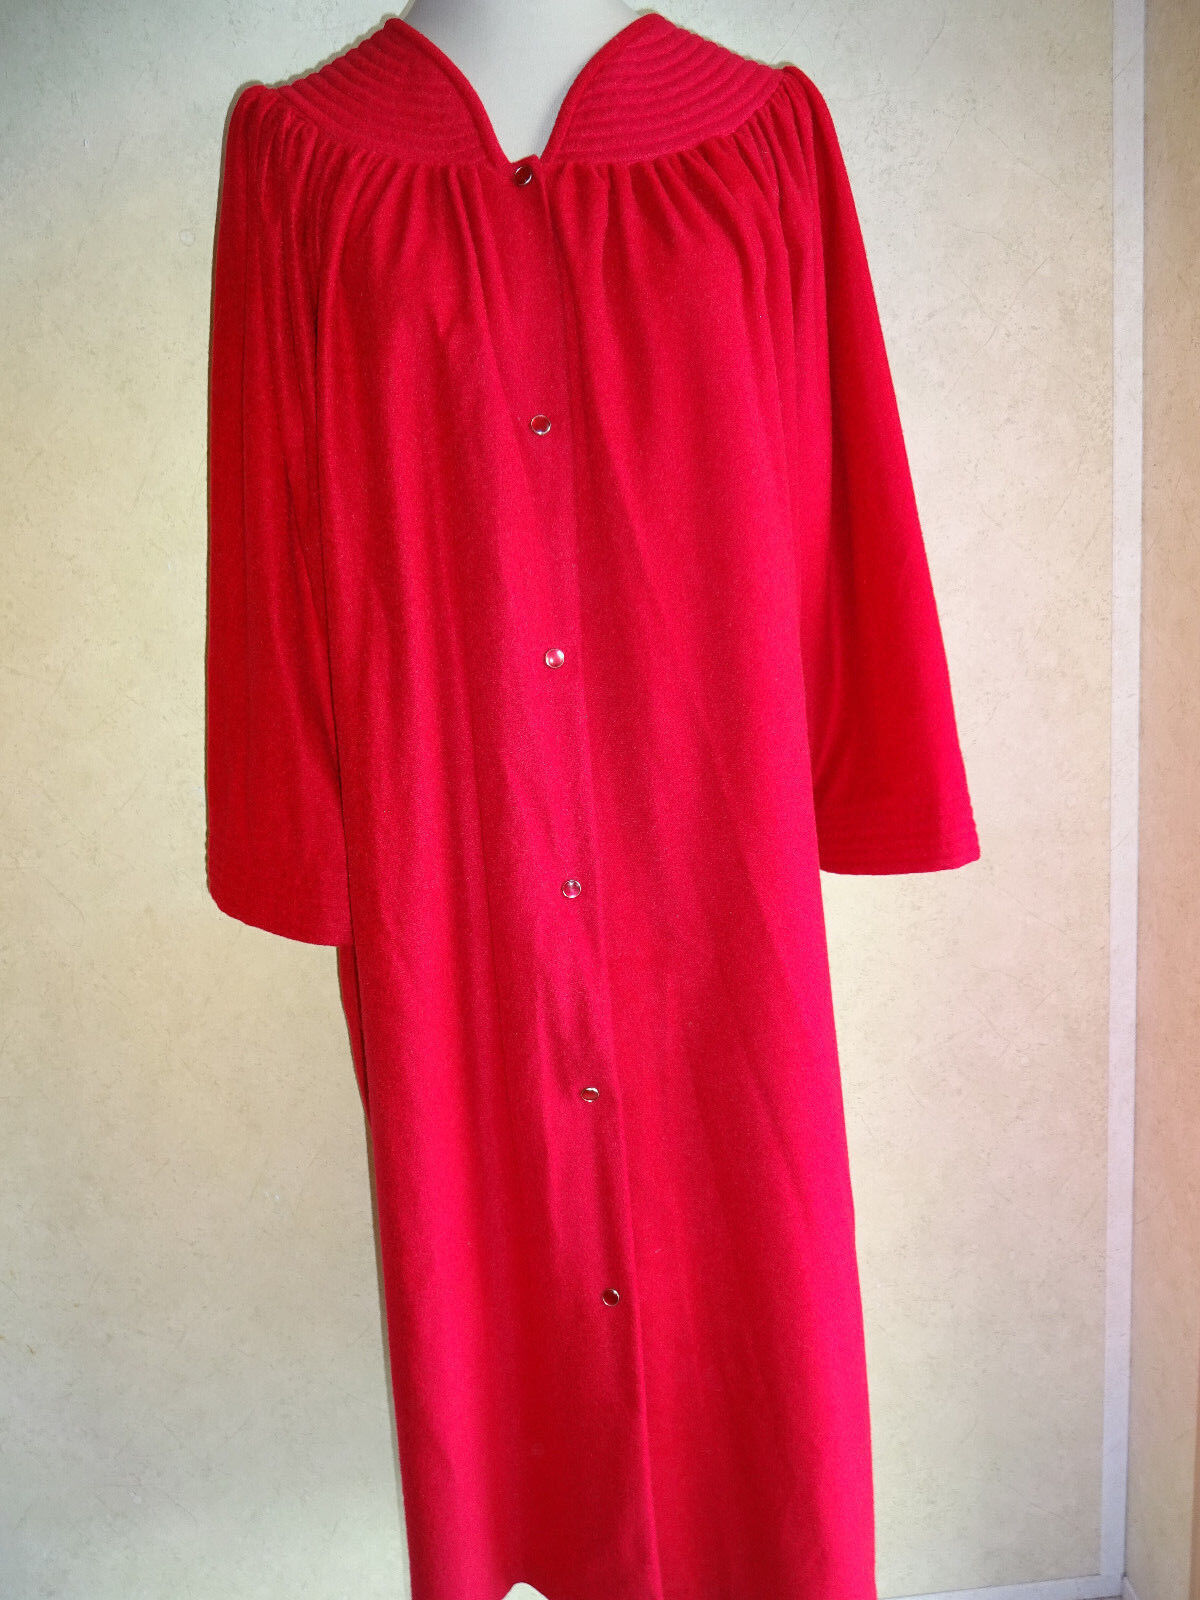 Womens Vintage Red Robe Sears At Home Wear 3XL 46 48 Winter Fall USA